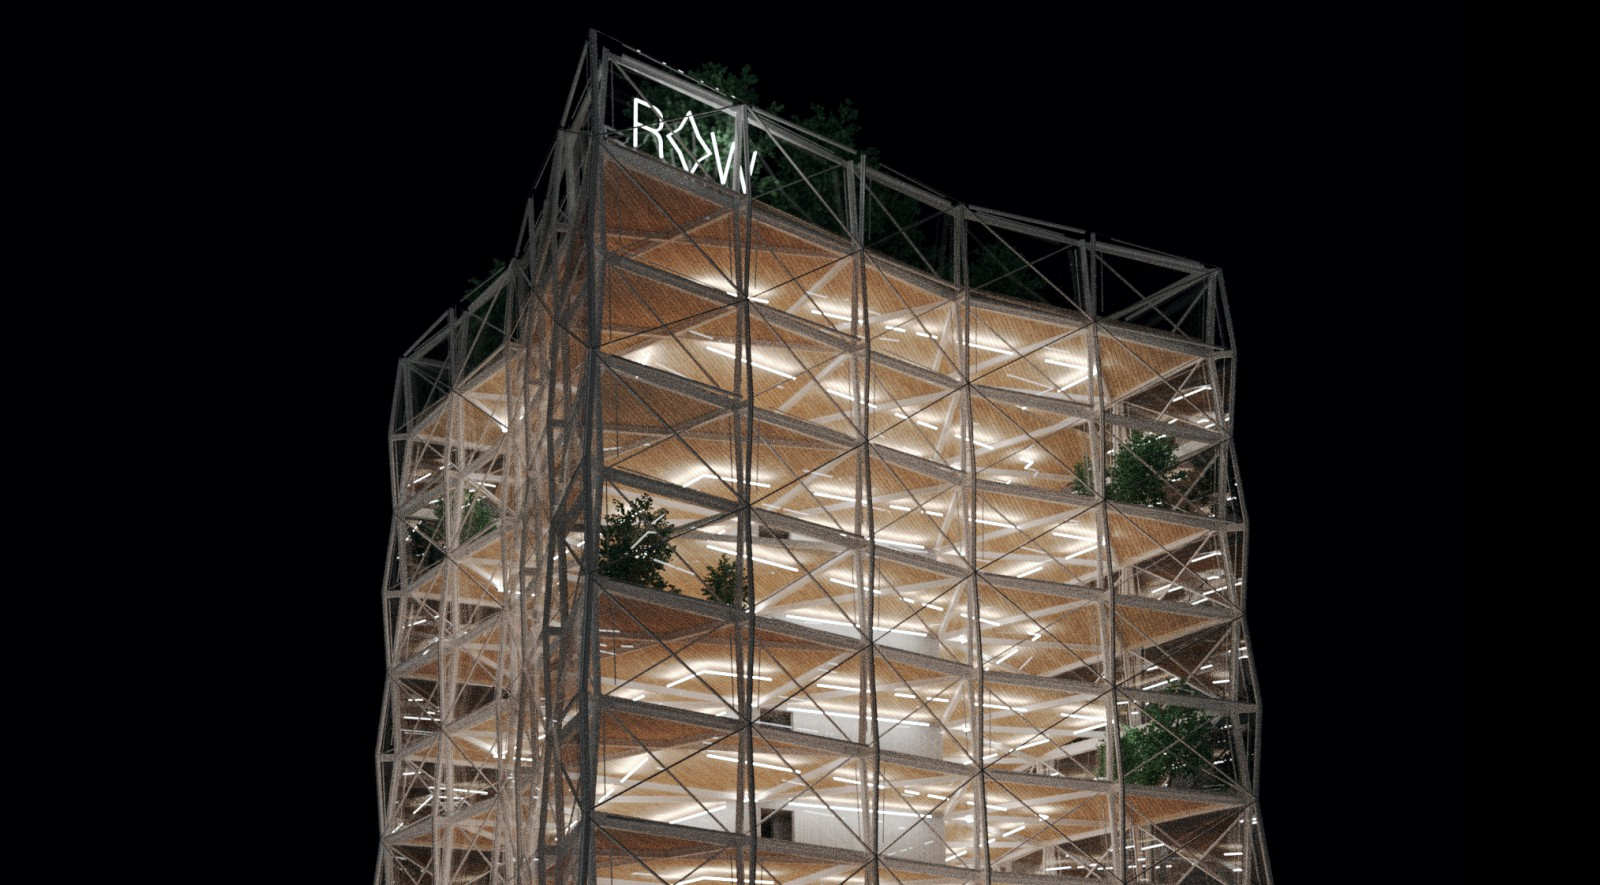 RAW tower